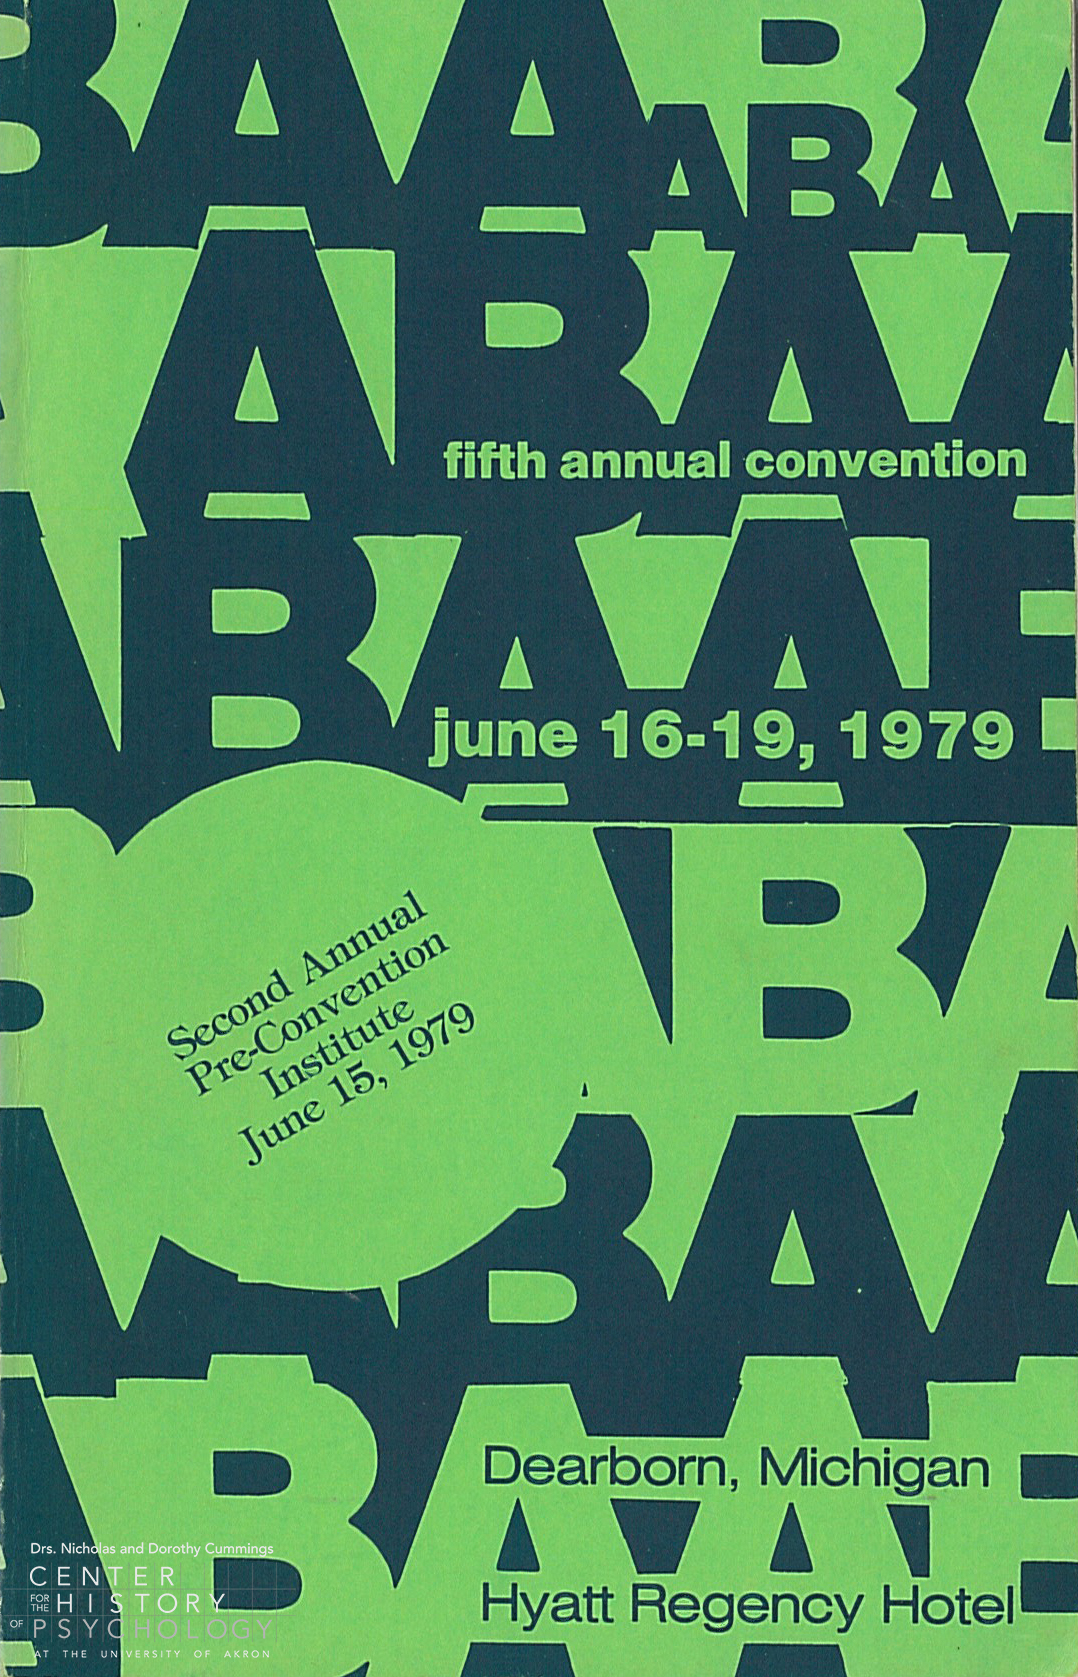 SpecialInterest_ABAConferencePrograms_1979cover_editedwatermarked.jpg